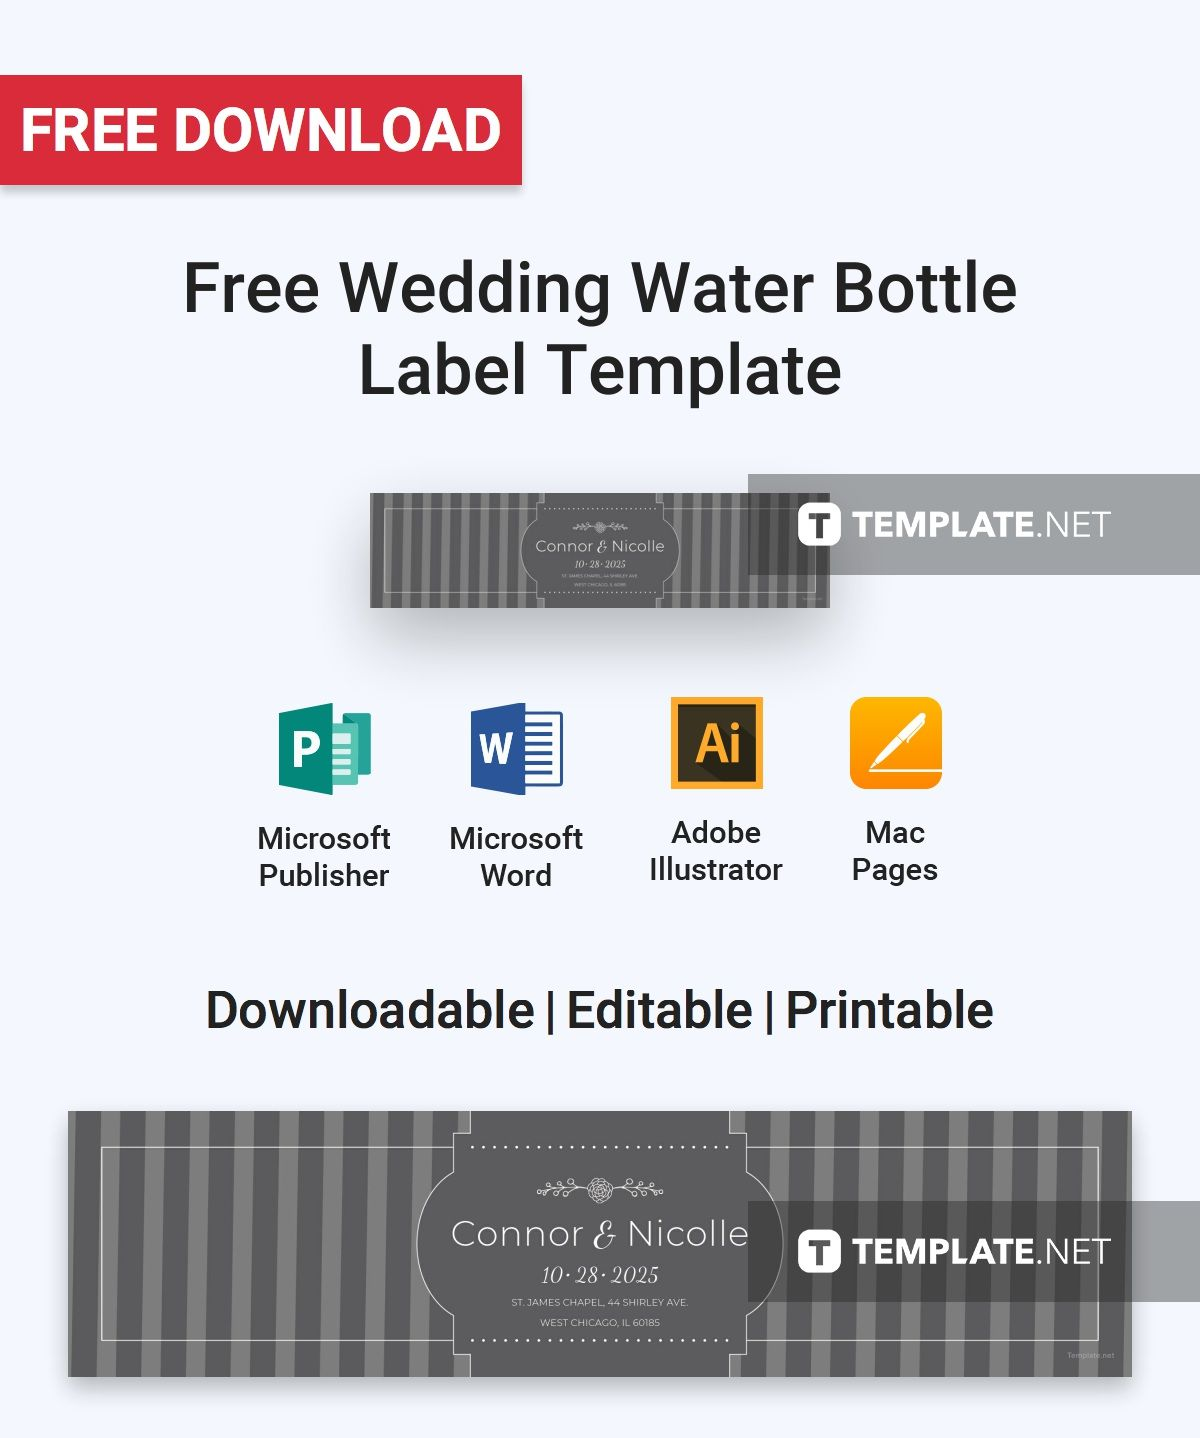 Free Download Label Templates Microsoft Word Free Wedding Water Bottle Label  Label Templates Template And Graphics